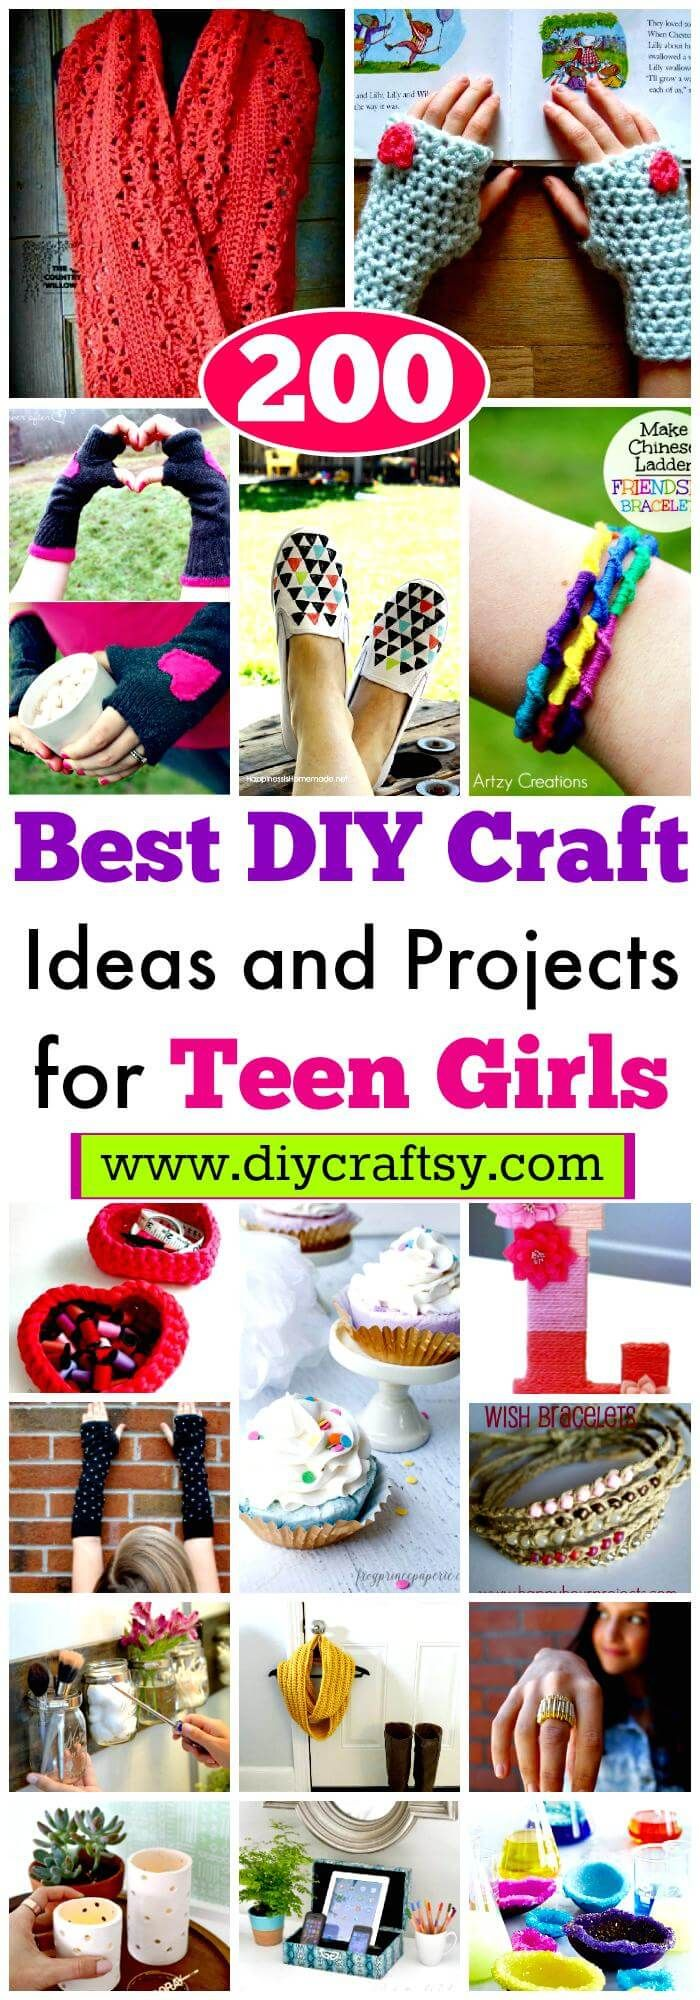 25 crafts for women ideas